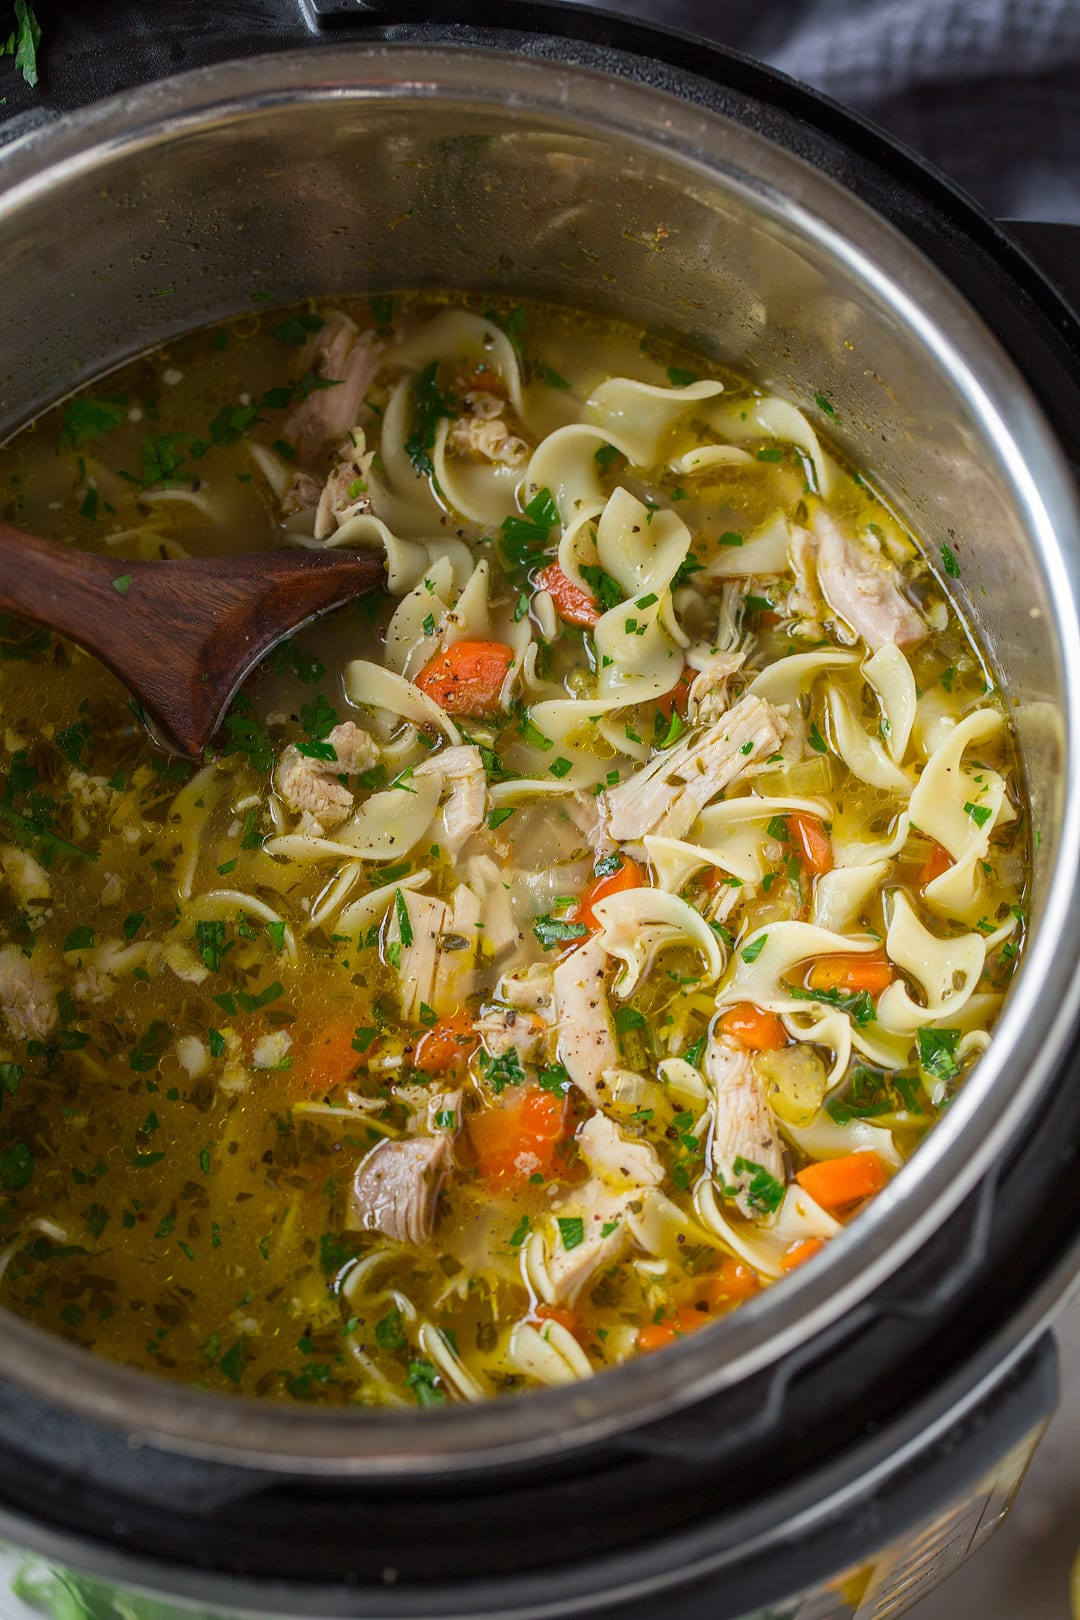 Chicken Noodle Soup shown here in an Instant Pot